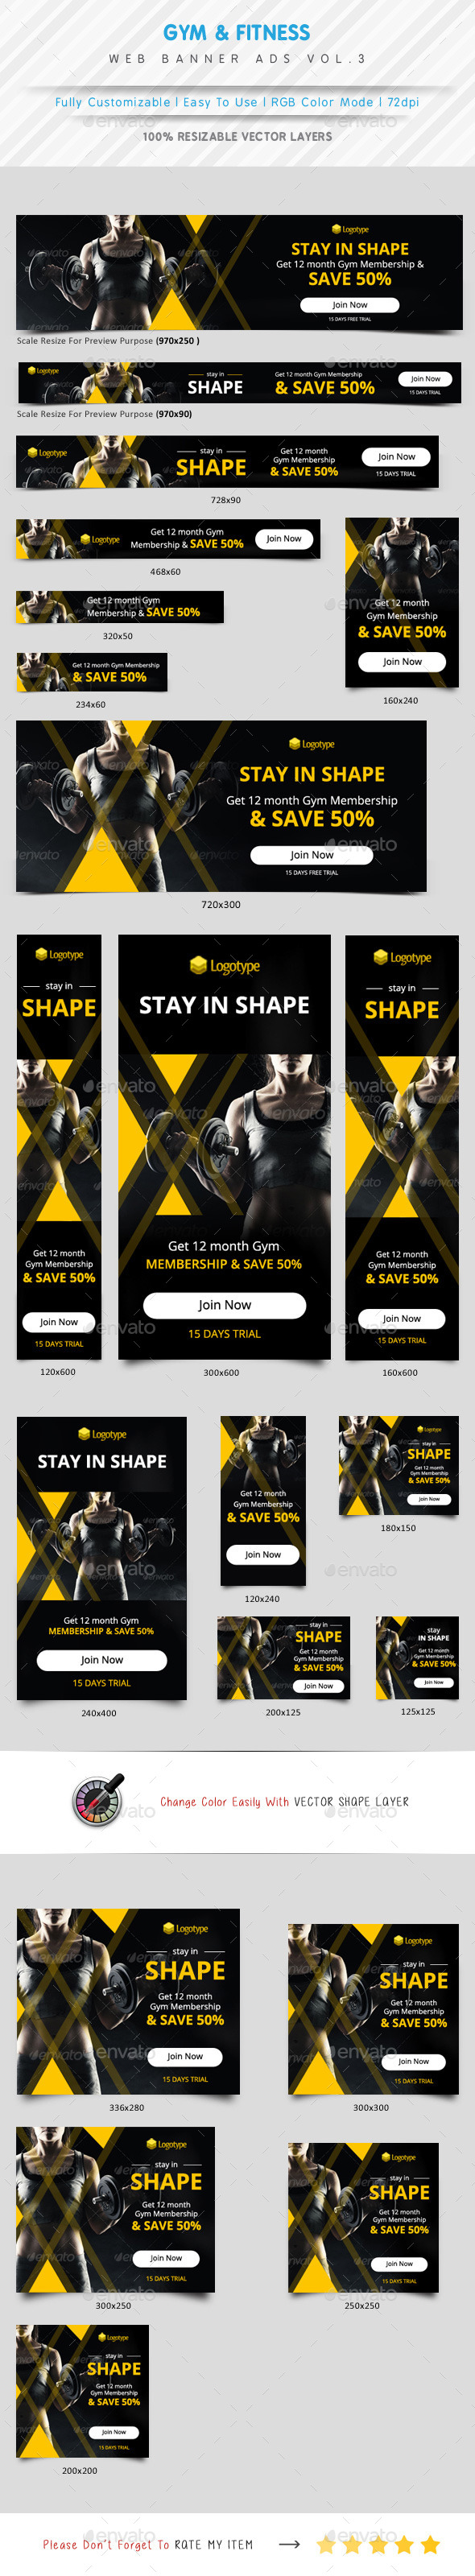 Gym & Fitness Web Banner Ads Vol.3 - Banners & Ads Web Elements